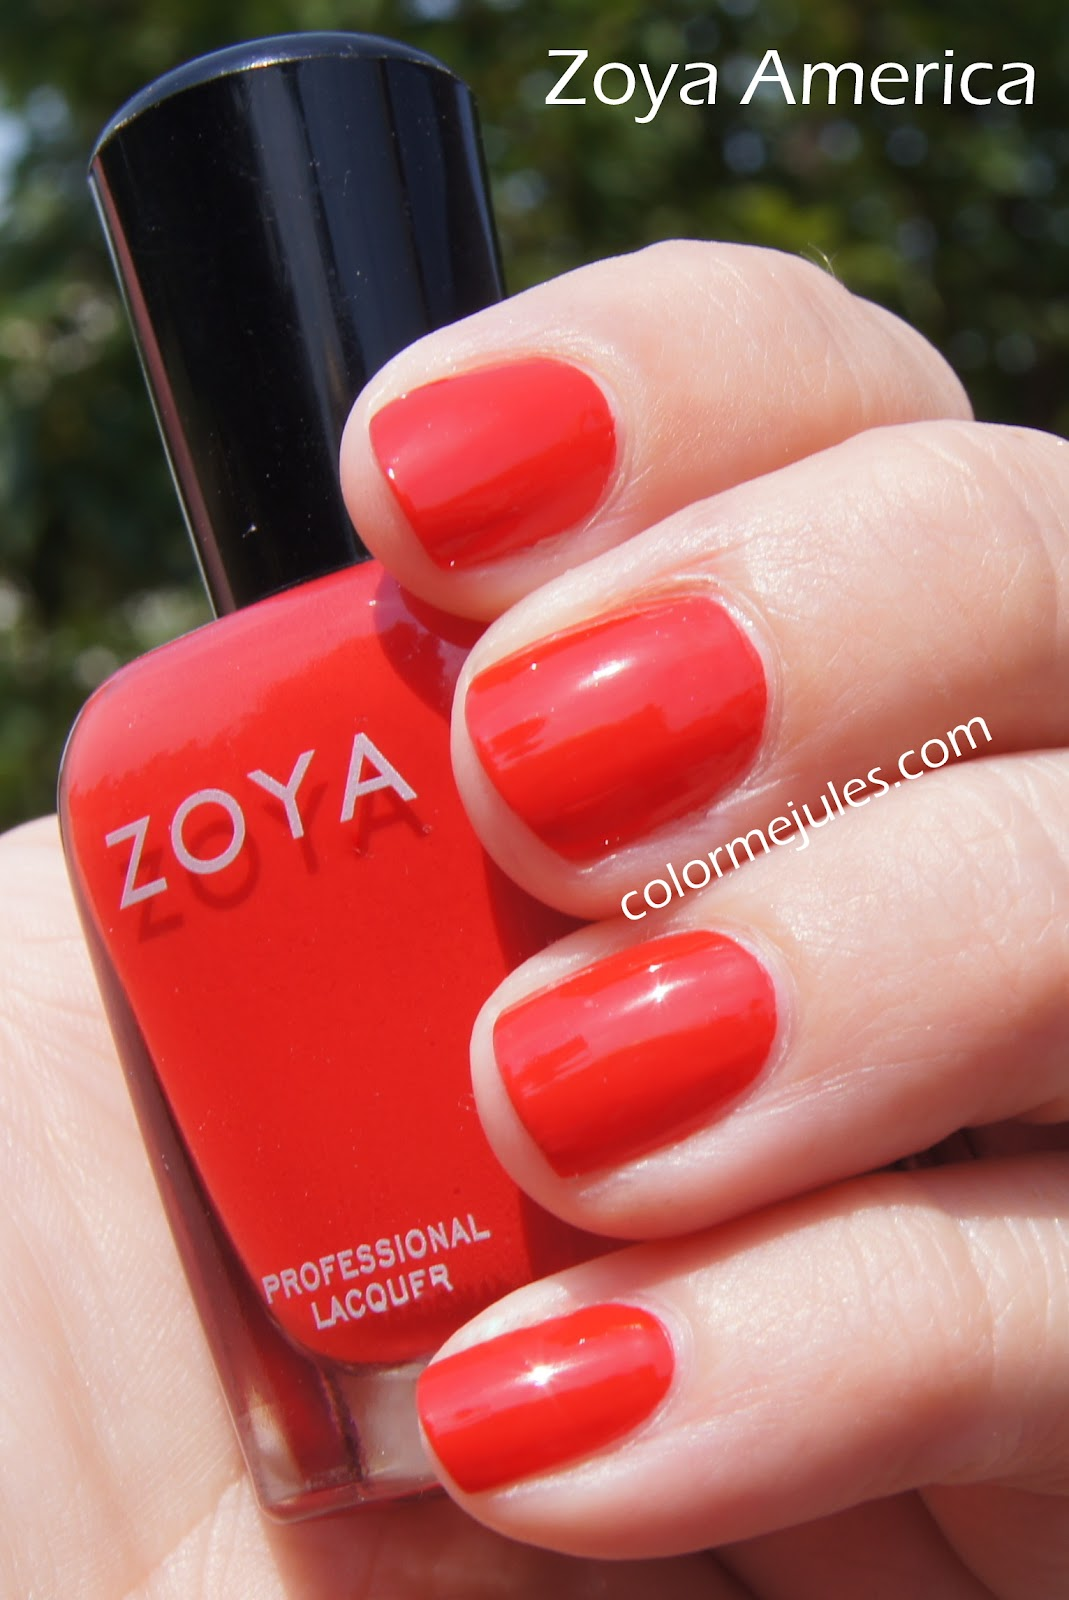 ZOYA polishes come in over non-toxic colors with a range of finishes. They also sell specially formulated nail polish remover, and treatments that help lock in the vibrancy and shine of your manicure while helping you avoid that dreaded chipped nail.